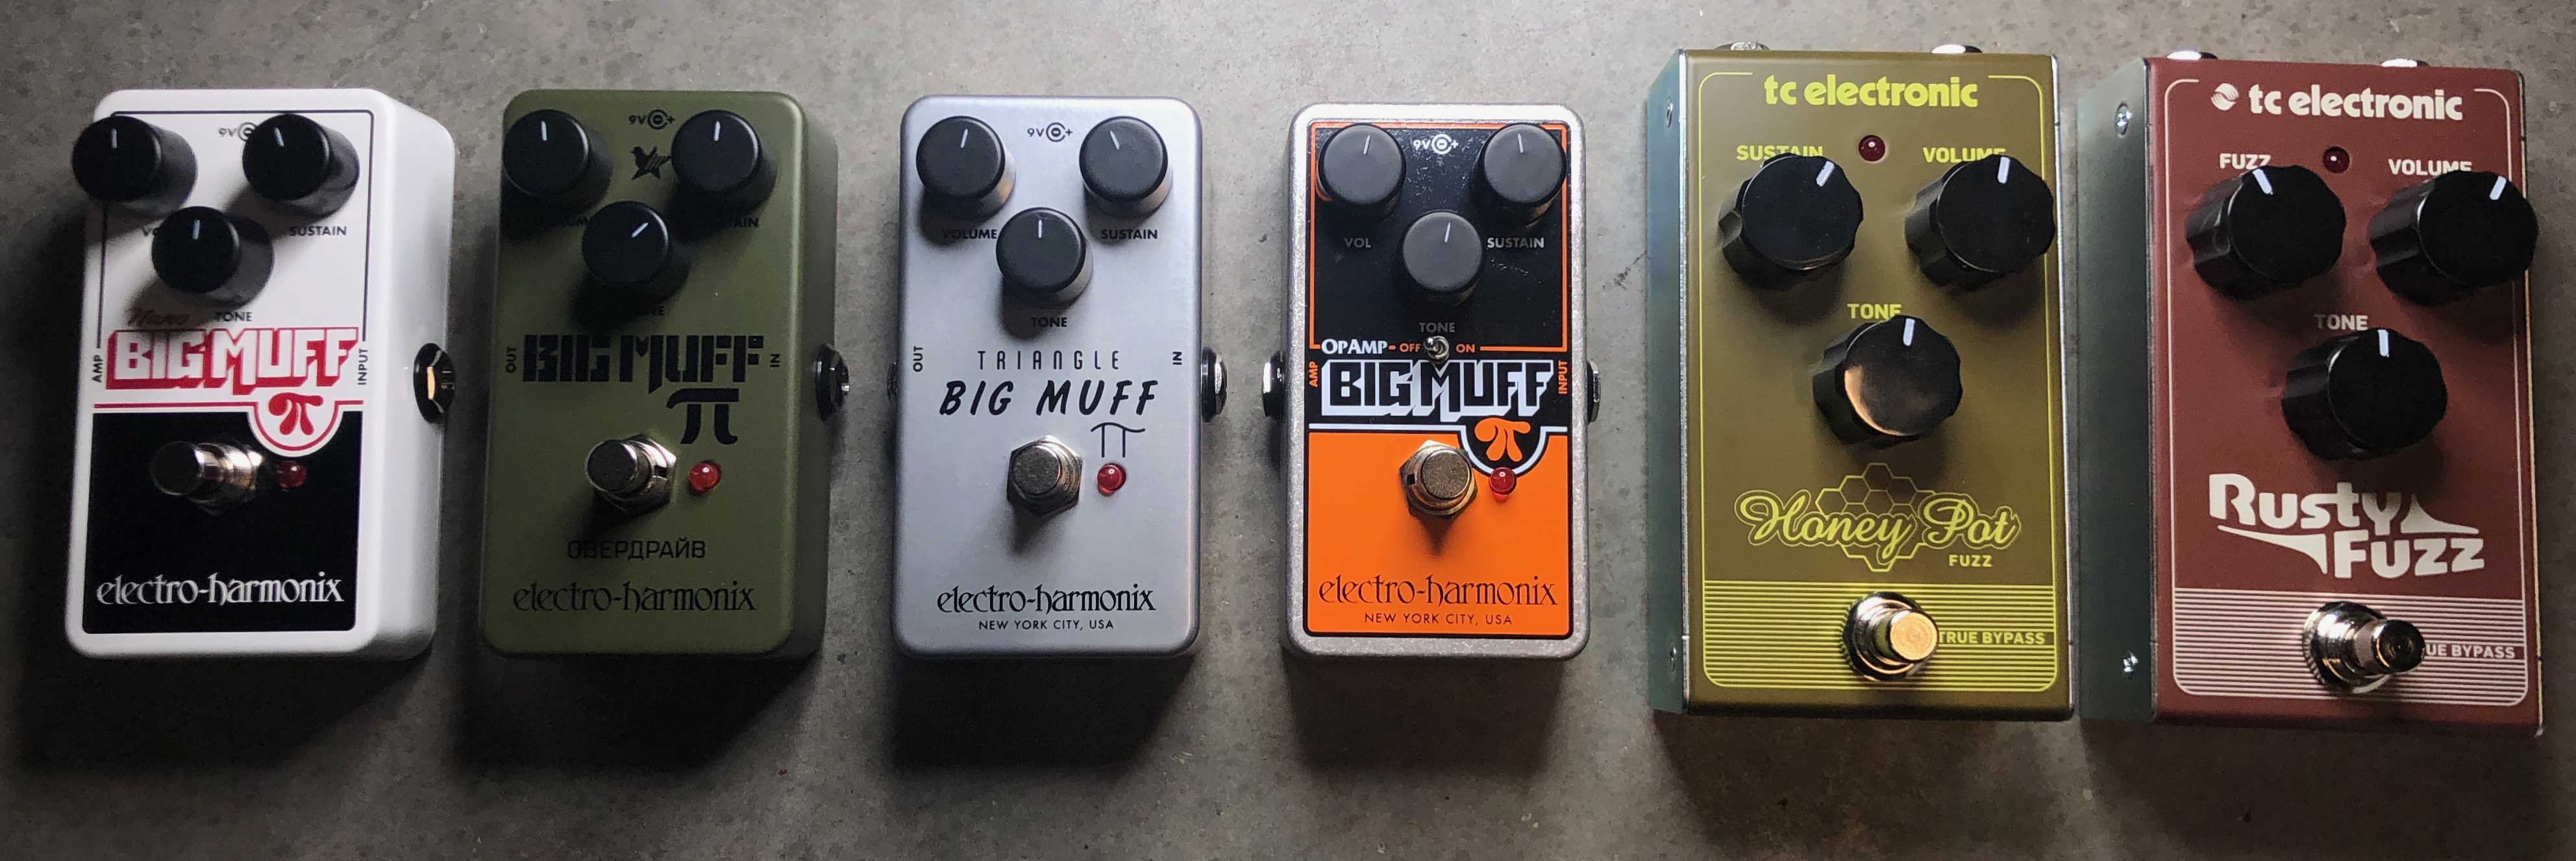 13 Best Fuzz Pedals for Guitar [2019] | Equipboard®